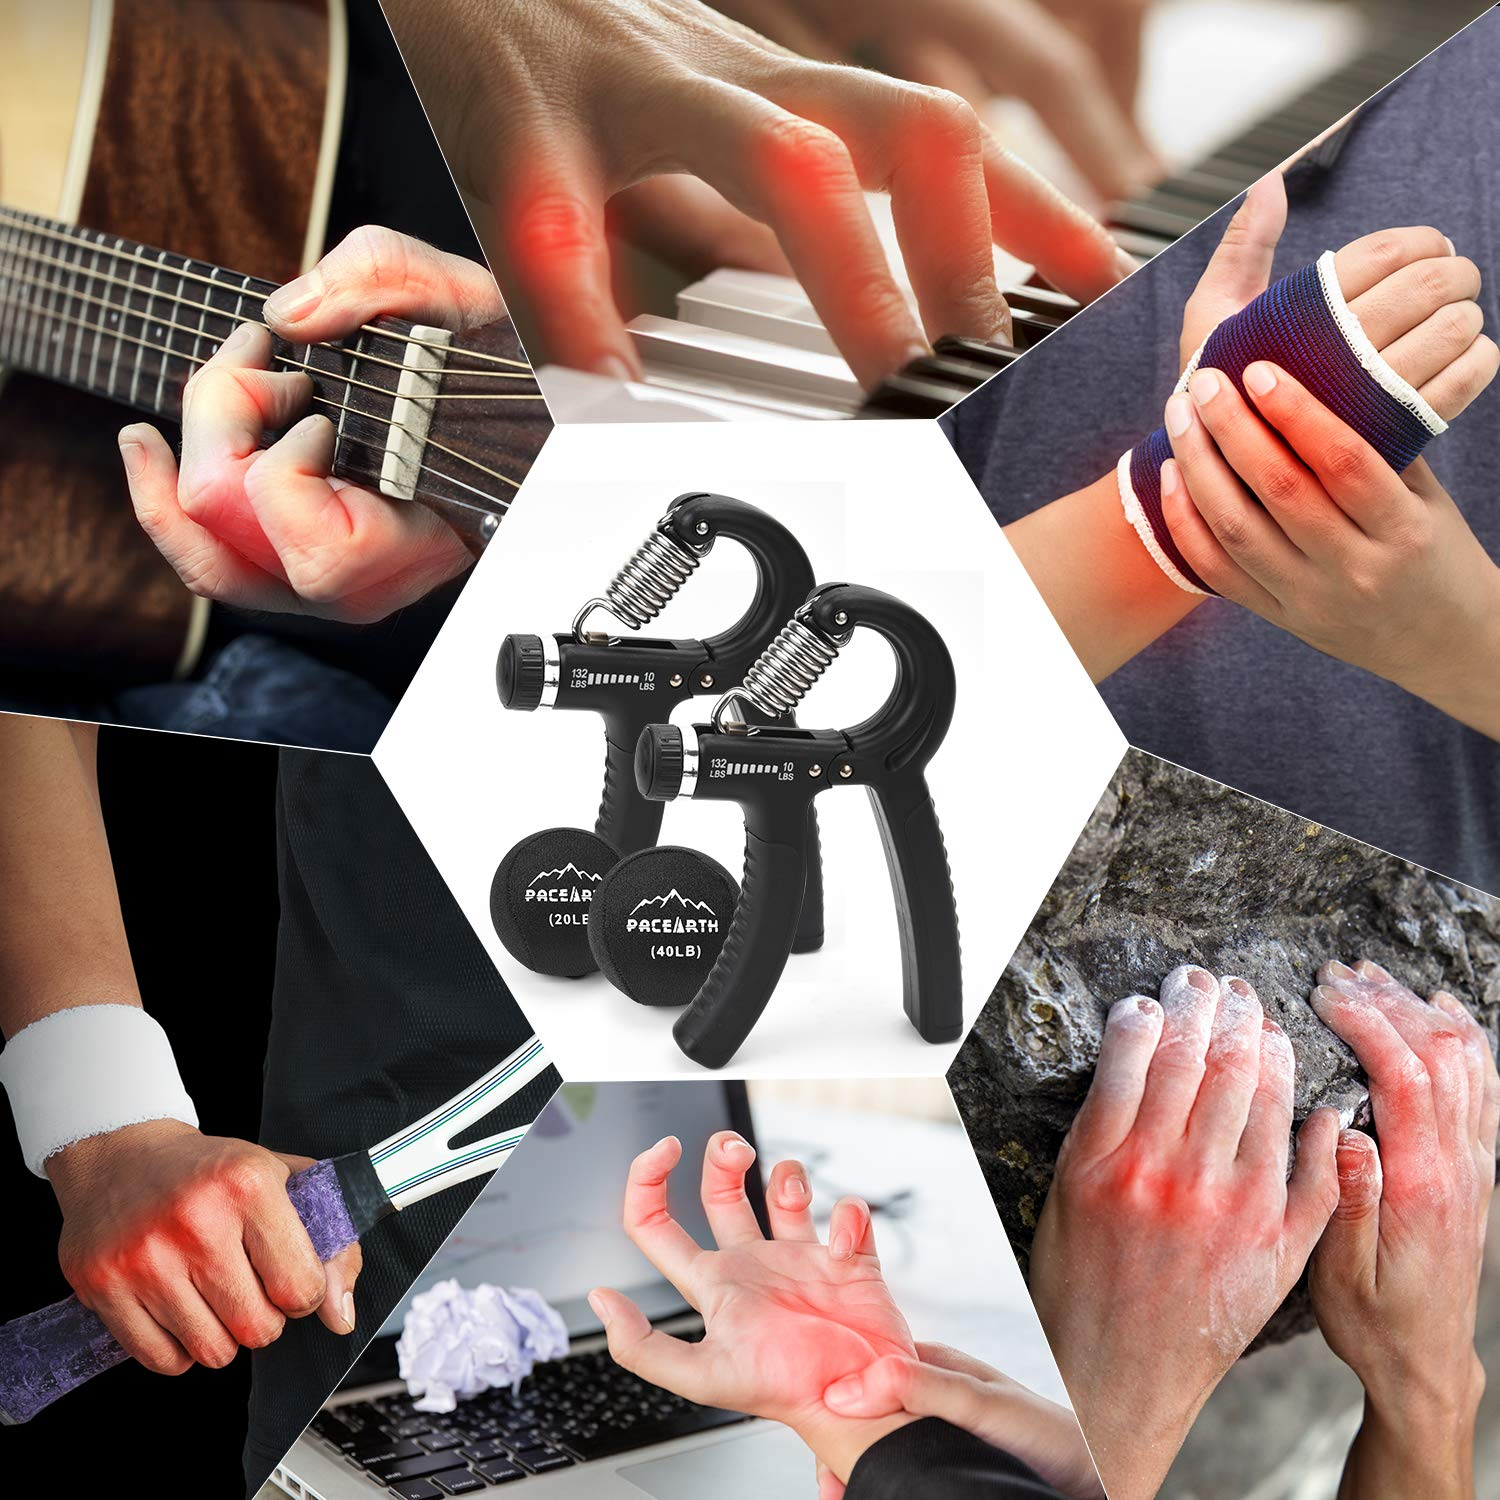 PACEARTH Hand Grip Strengthener Workout Kit 4 Pack Forearm Grip Adjustable Resistance Hand Gripper 10lbs-132lbs with Stress Relief Grip Ball for Athletes,Musicians,Injury Recovery,Muscle Builder